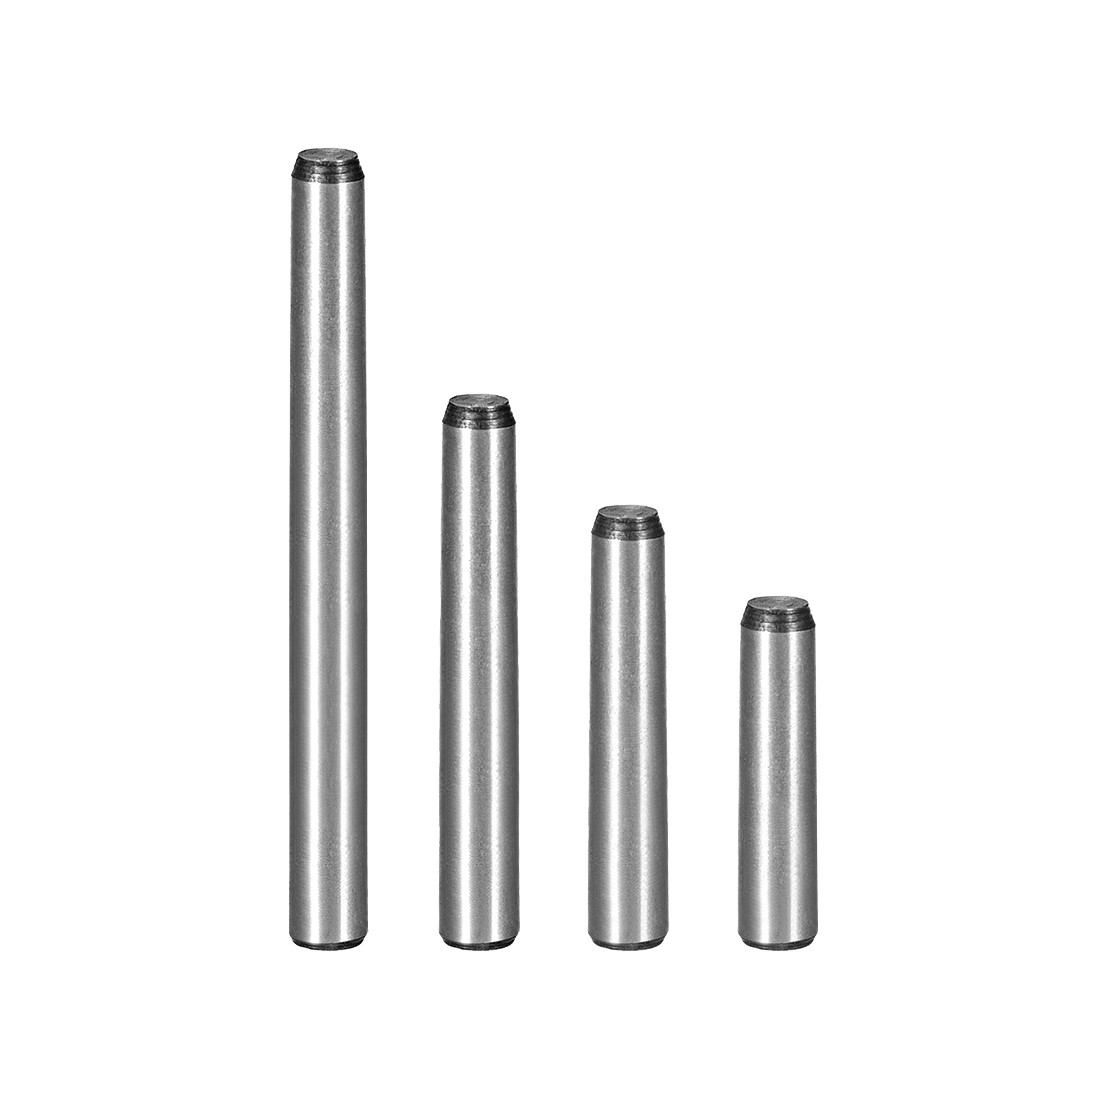 Uxcell 5Pcs 6mm Small End Diameter 1:50 Taper Pin Length 25/30/35/40/50/60/70/80mm Carbon Steel GB117